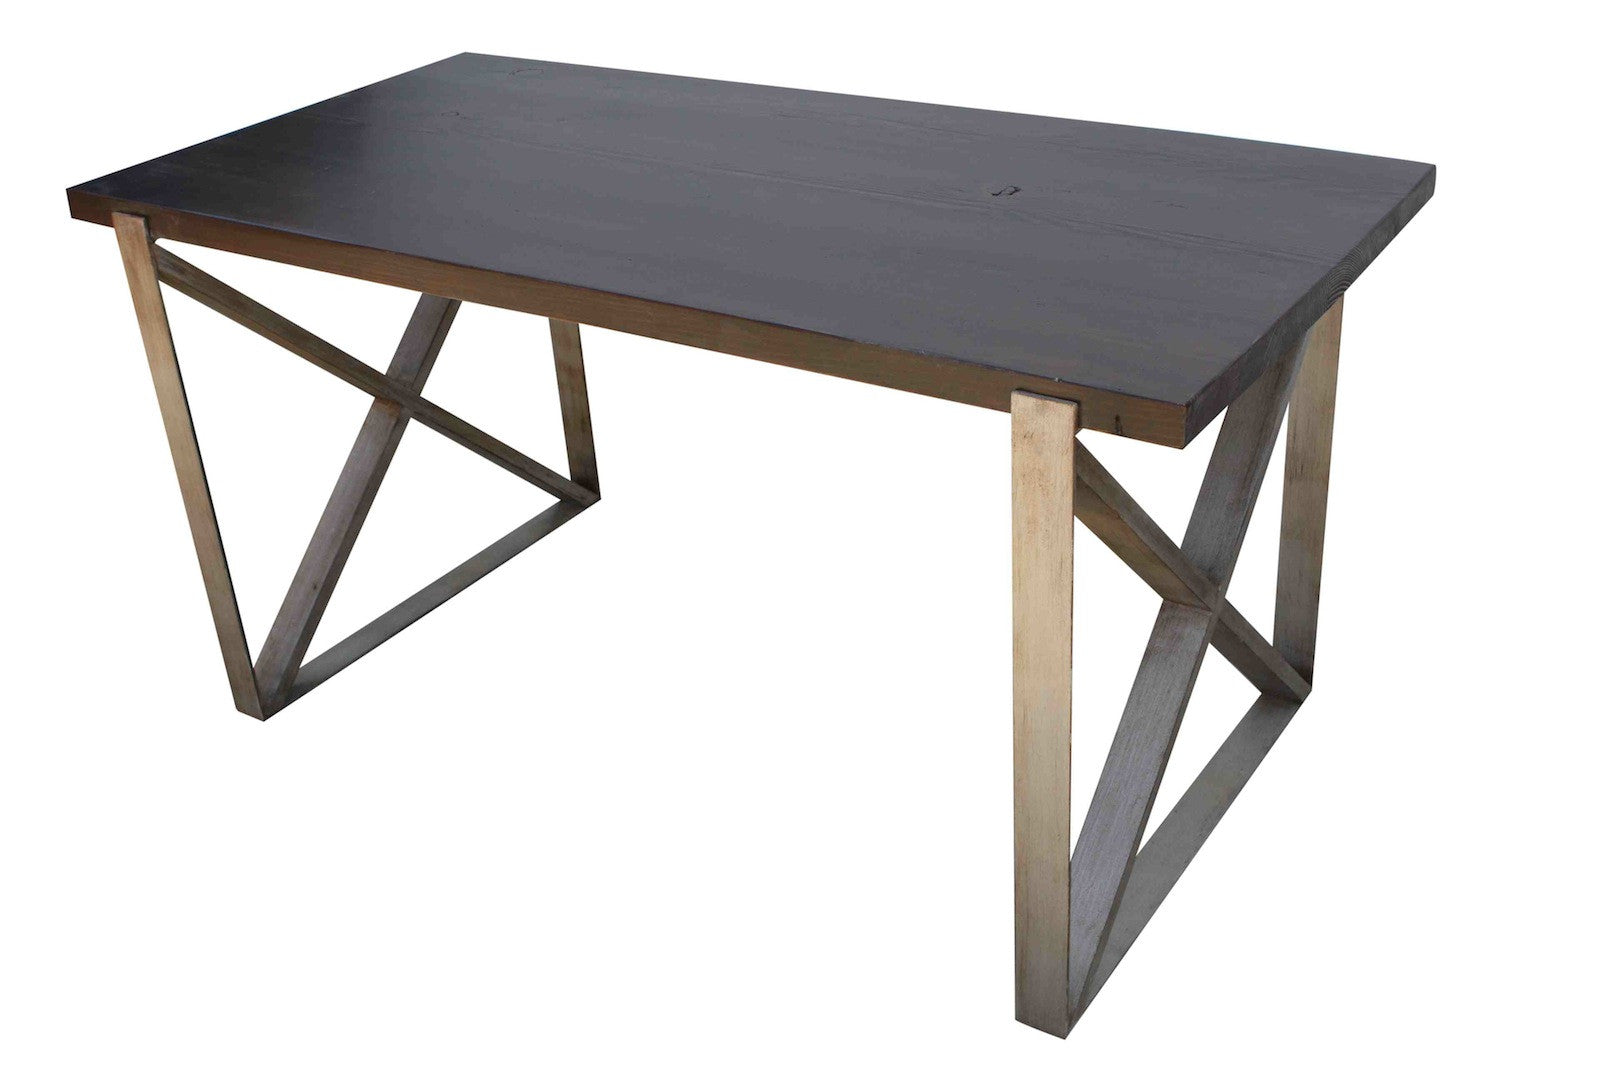 Chicago Industrial Dining Table In Reclaimed Wood Mortise Tenon - Reclaimed wood coffee table chicago